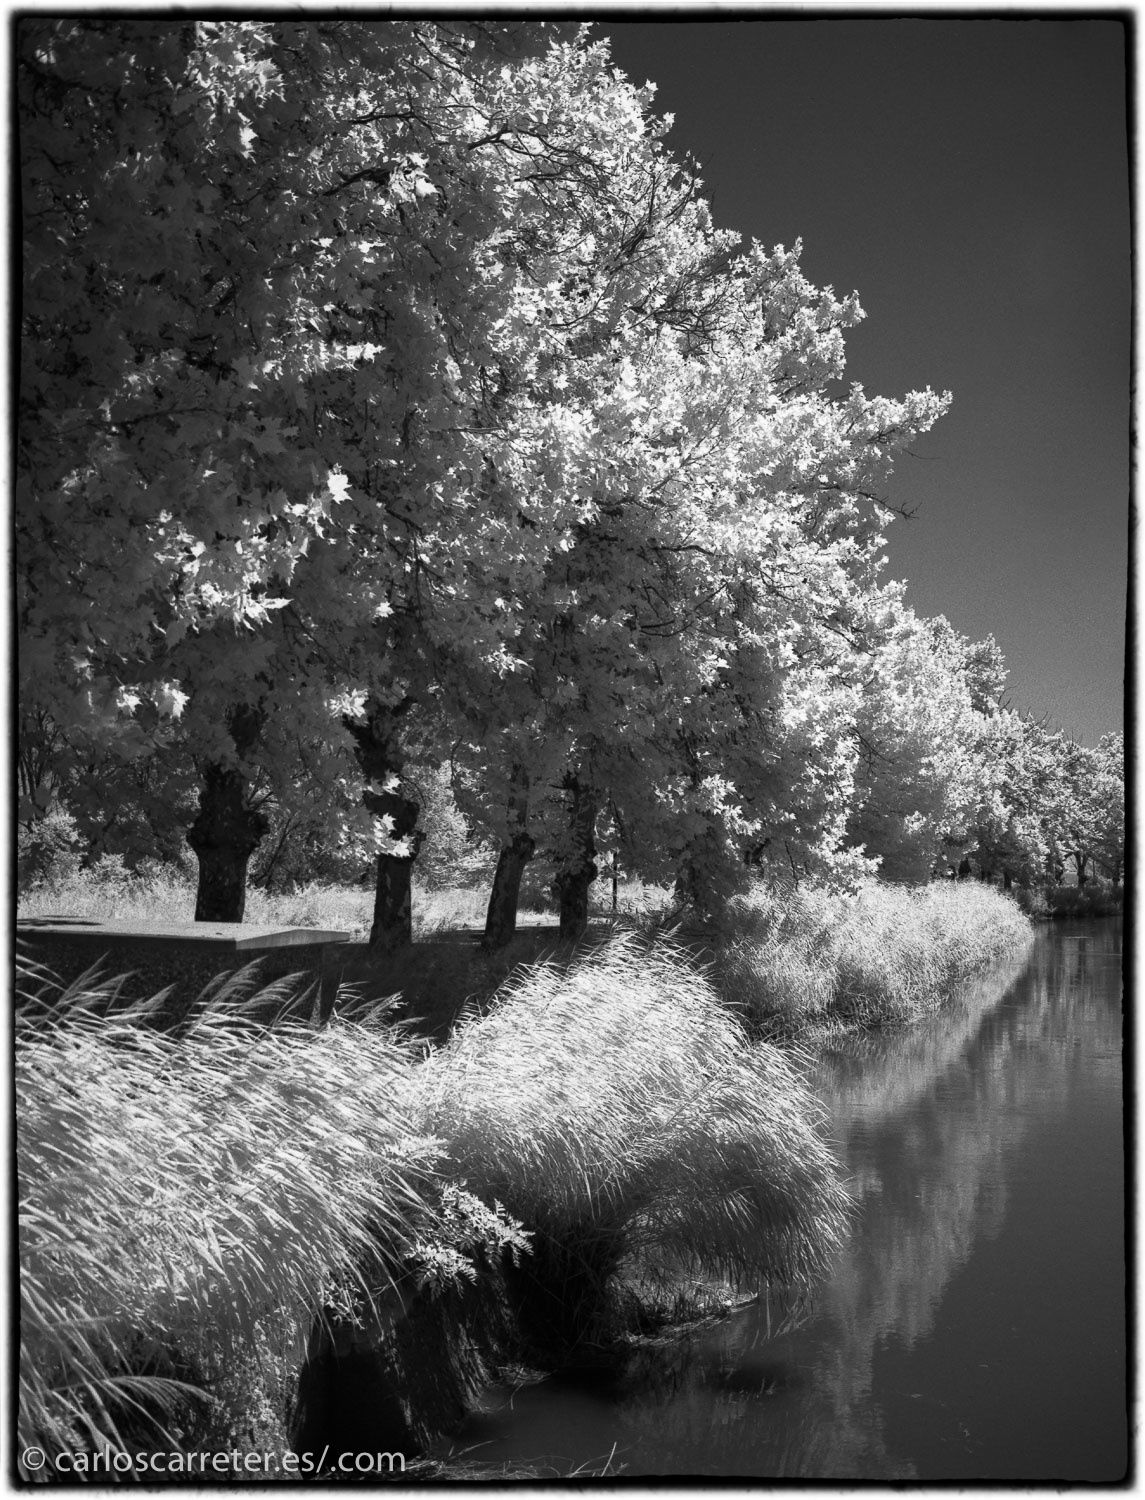 20170719-SuperP200IR+Rodinal1.50_003